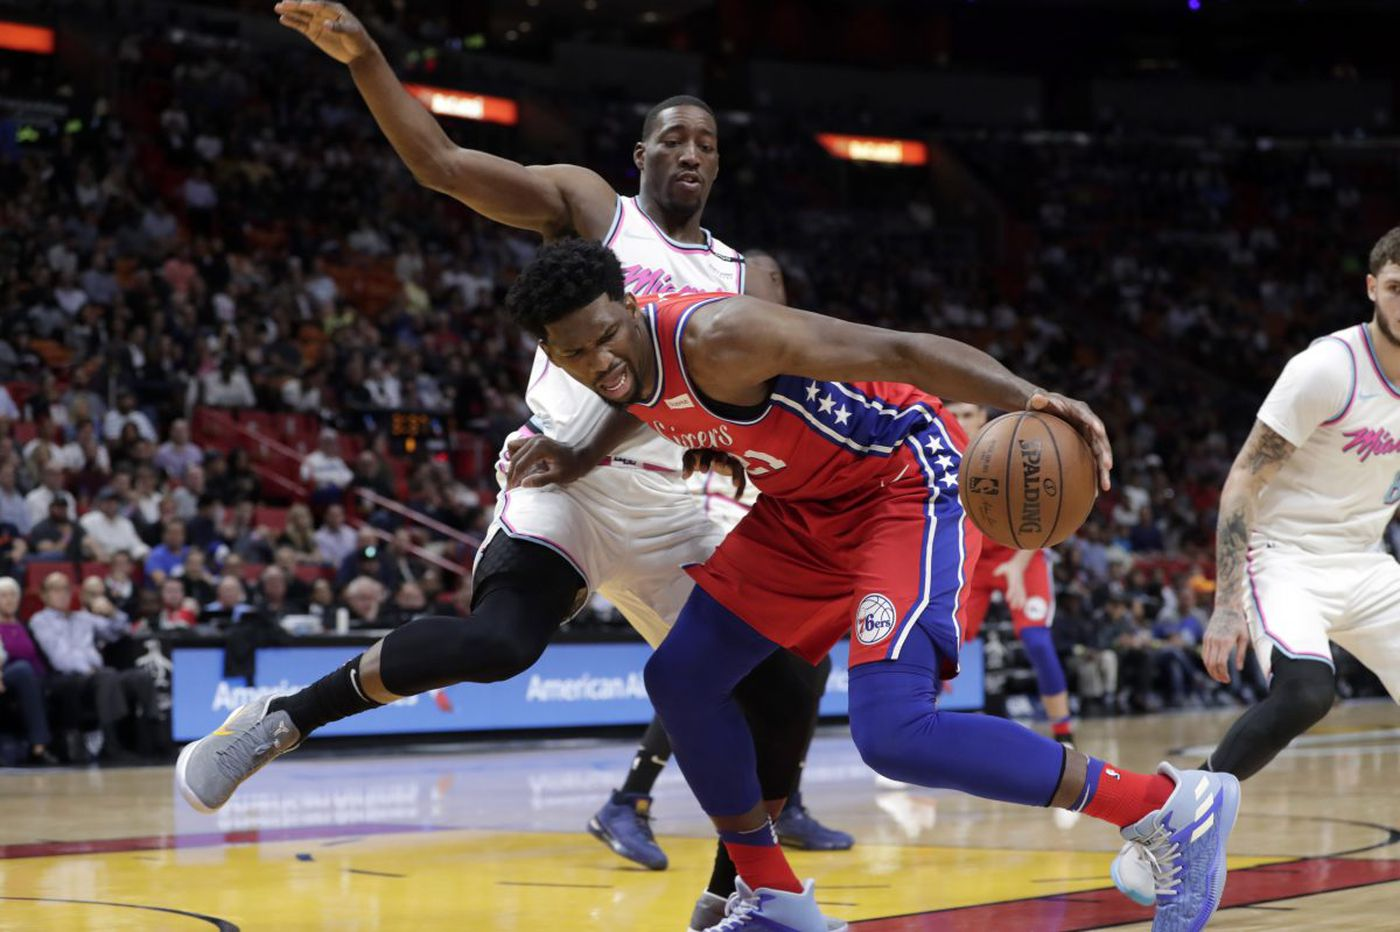 Heat 109, Sixers 99: Joel Embiid outshined by Hassan Whiteside and other quick observations